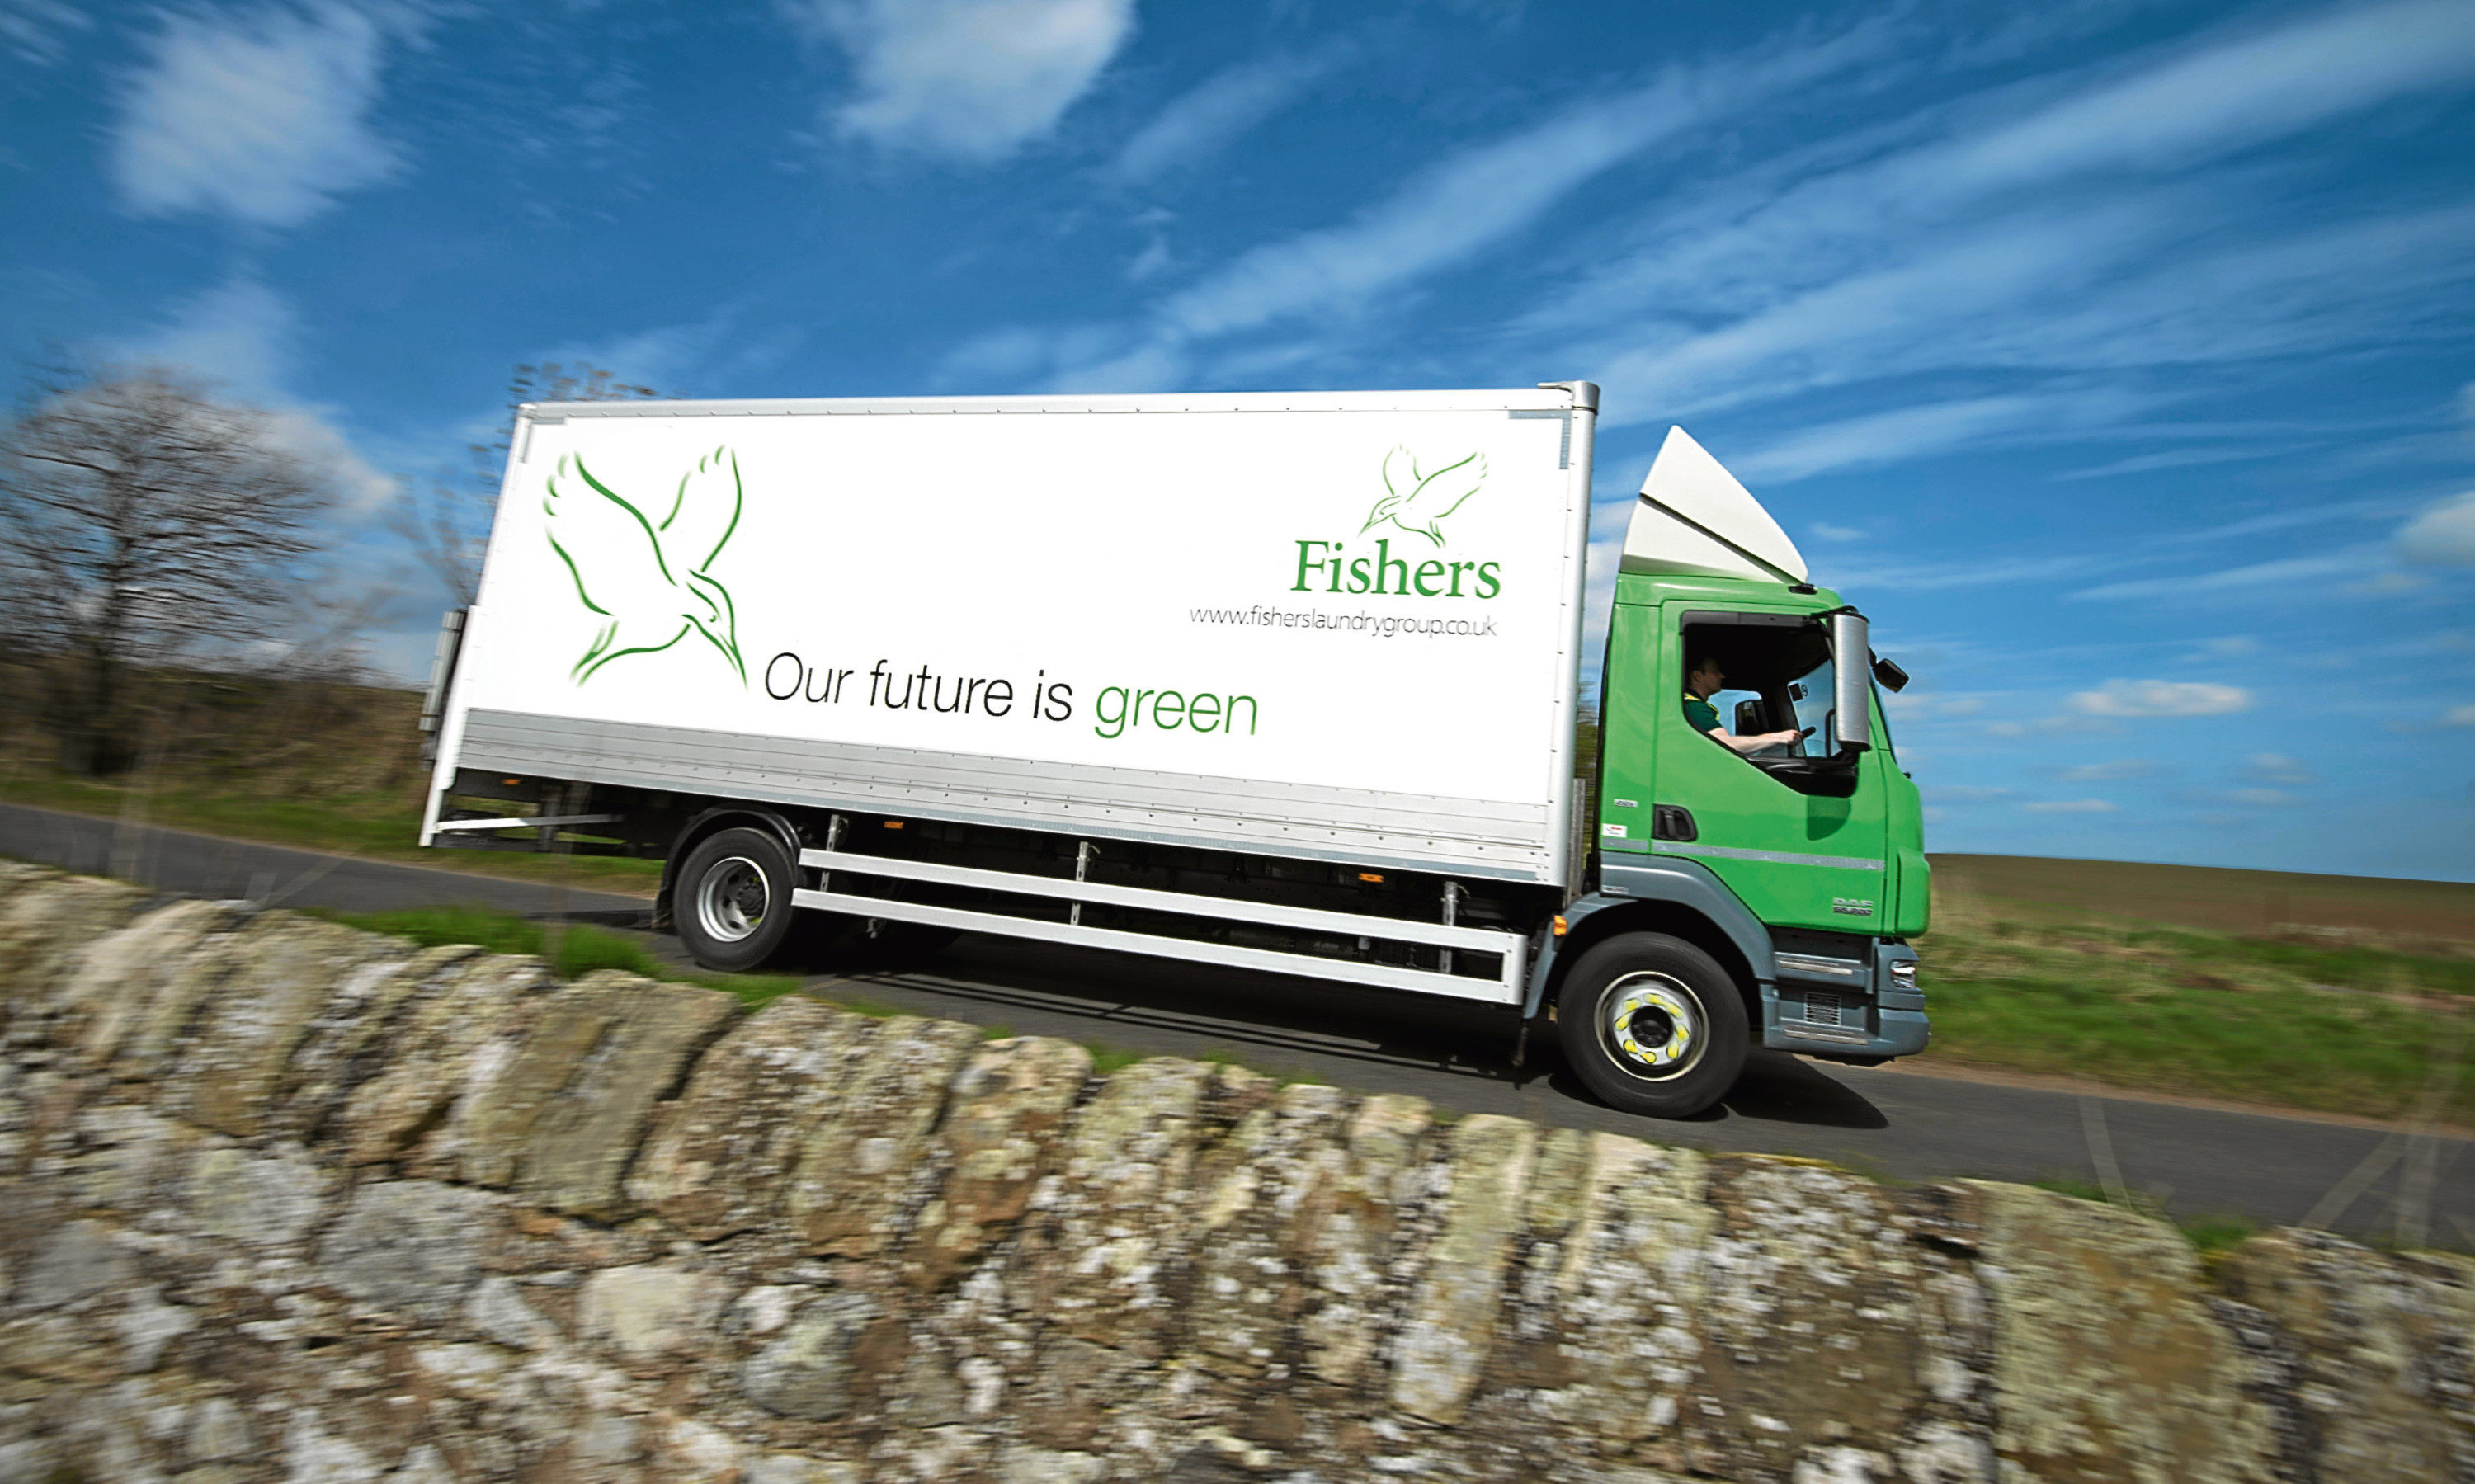 A Fishers laundry lorry heads out to make a delivery